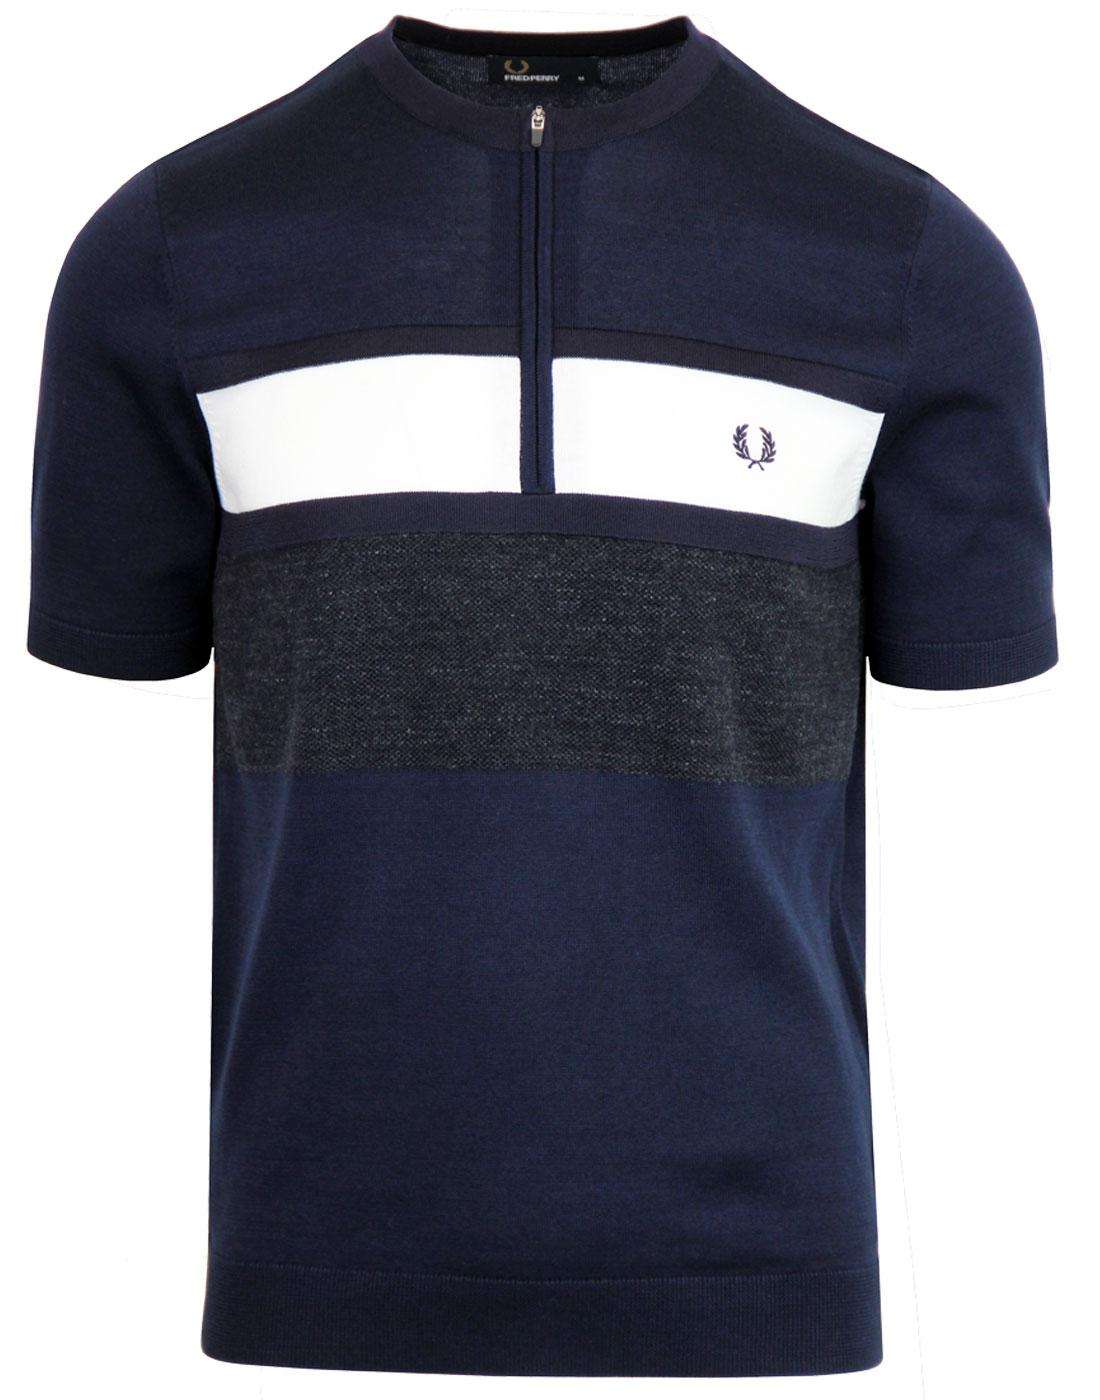 FRED PERRY Retro Knitted Zip Neck Mod Cycling Top